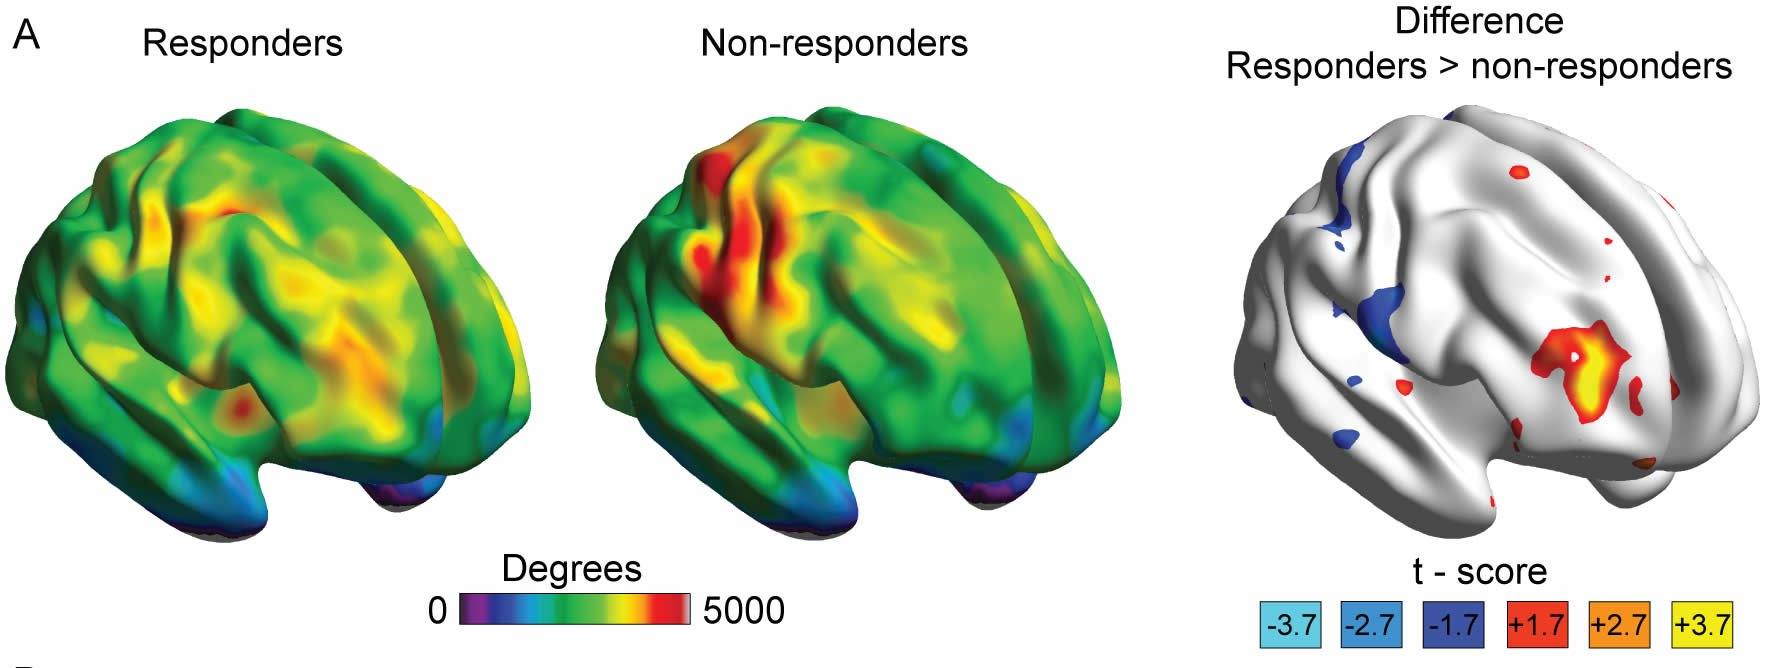 hight resolution of image shows brain scans from the study